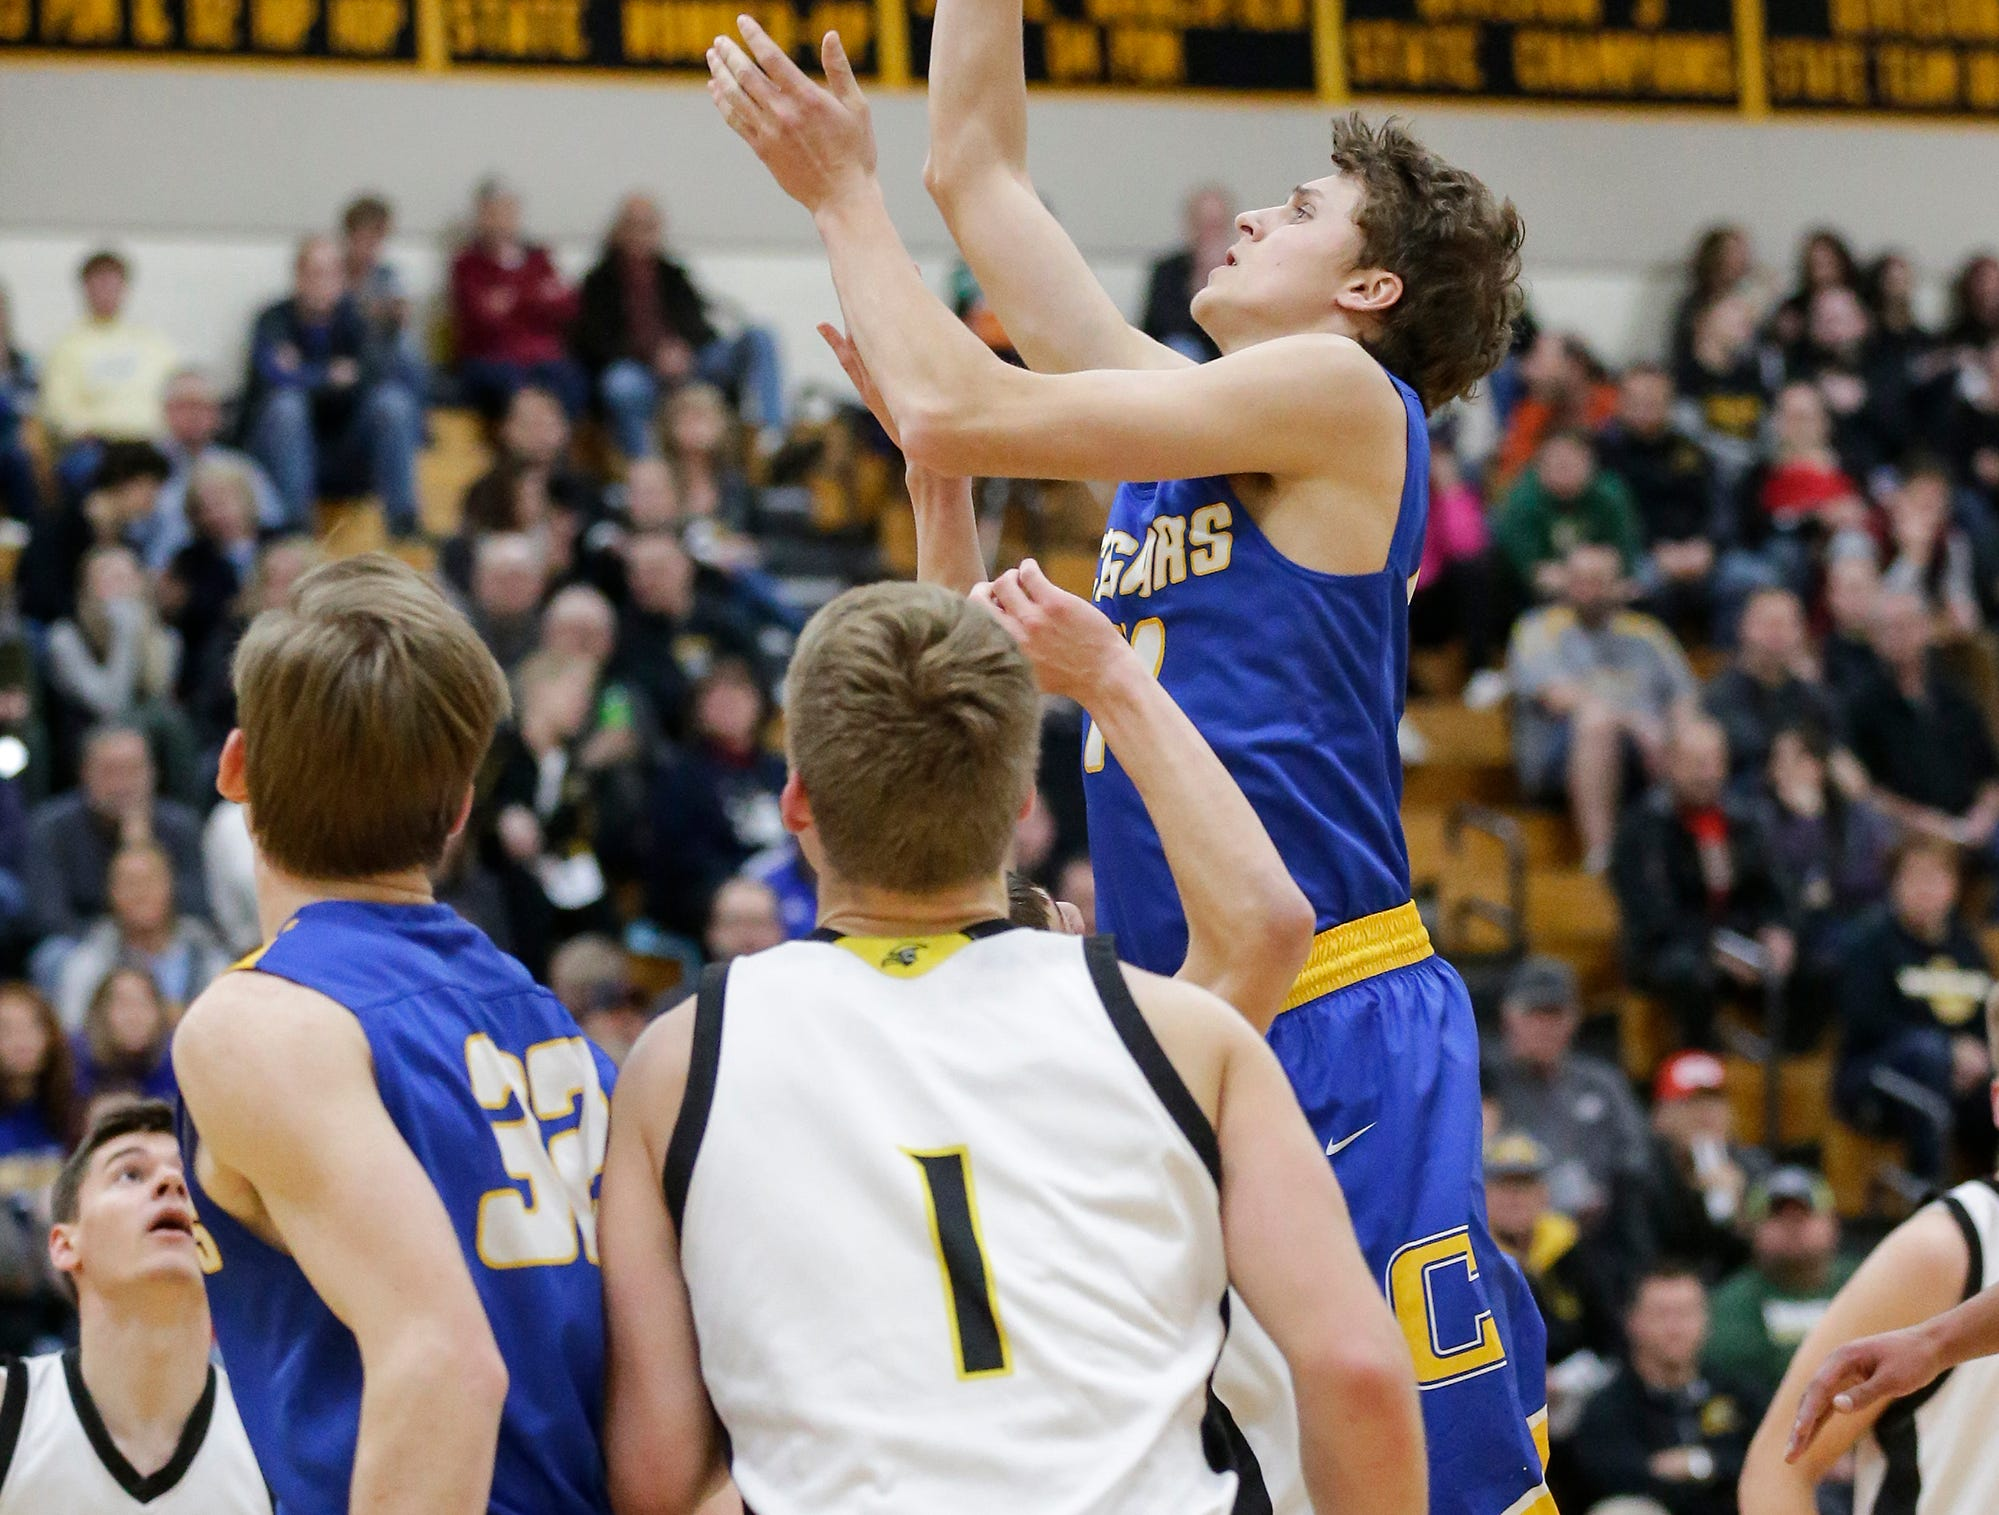 Campbellsport High School boys basketball's Lucas Gierach goes up for a basket against Waupun High School during their game Friday, December 14, 2018 in Waupun. Waupun won the game 64-33. Doug Raflik/USA TODAY NETWORK-Wisconsin